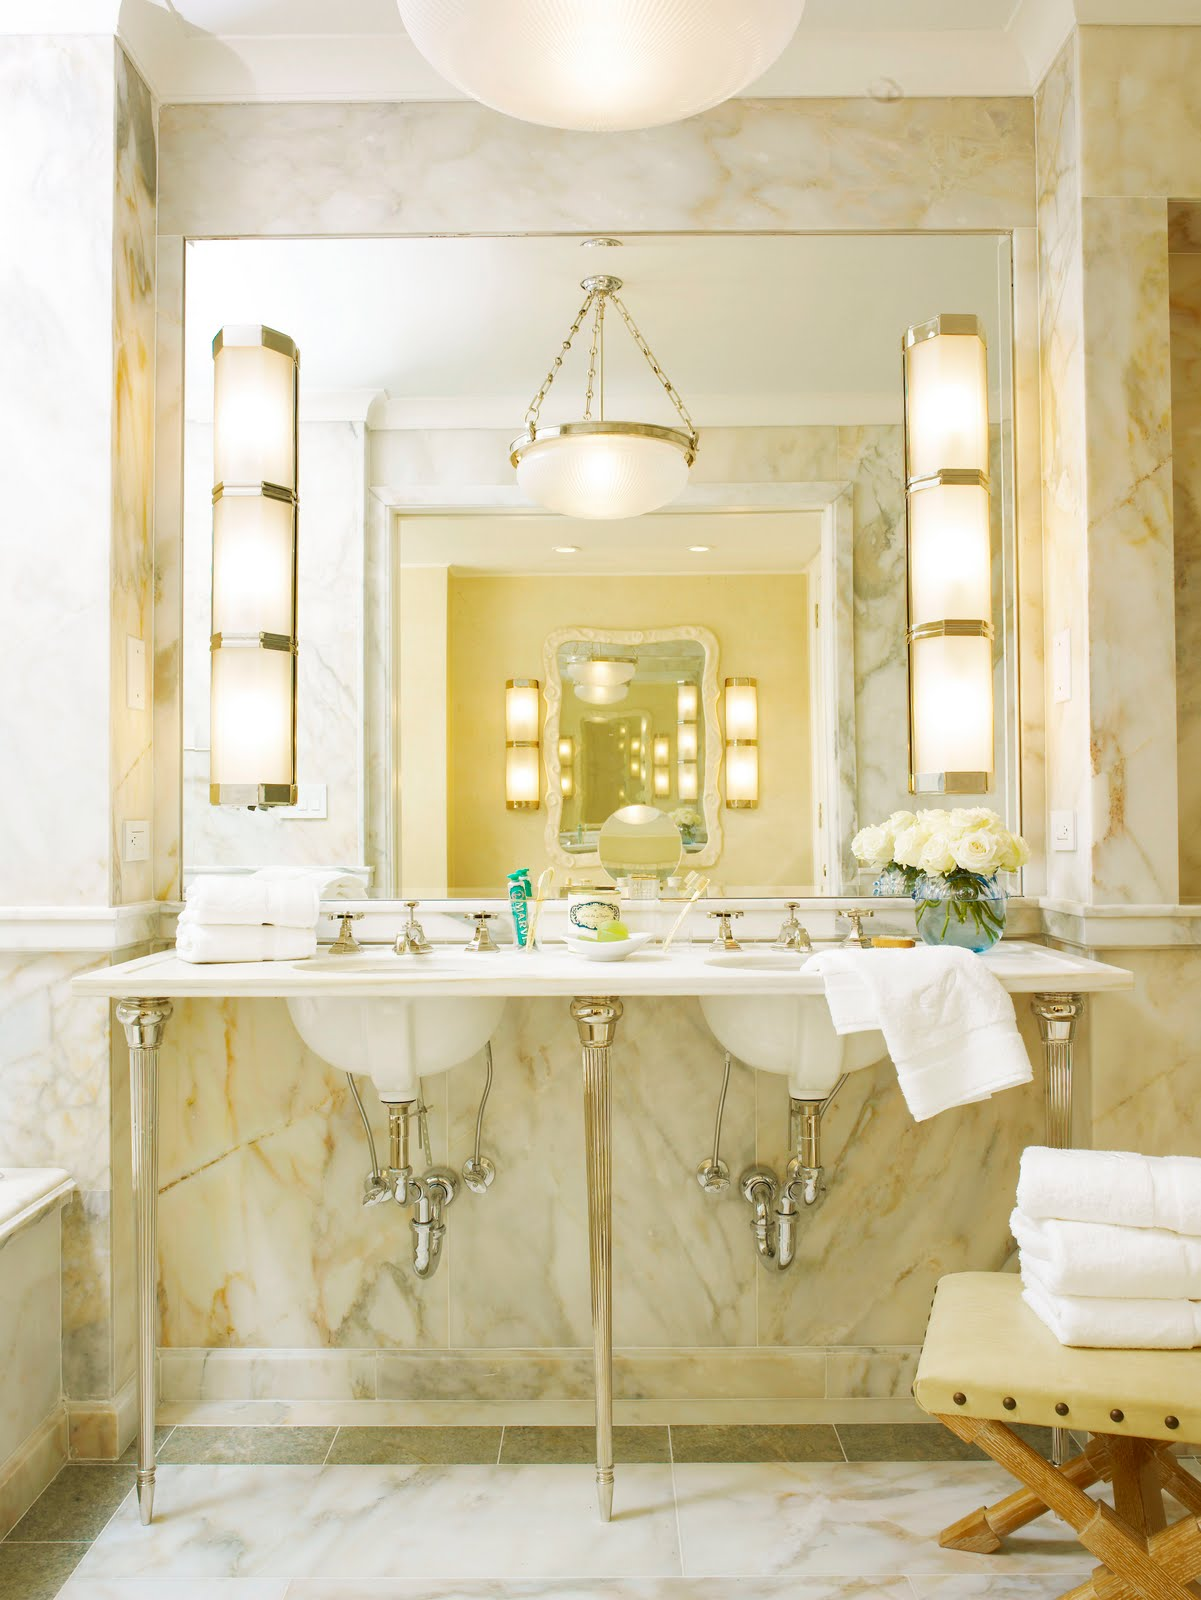 Smith Smith Kitchens: COCOCOZY: BOOK LOOK: KITCHENS & BATHS BY WHITE HOUSE